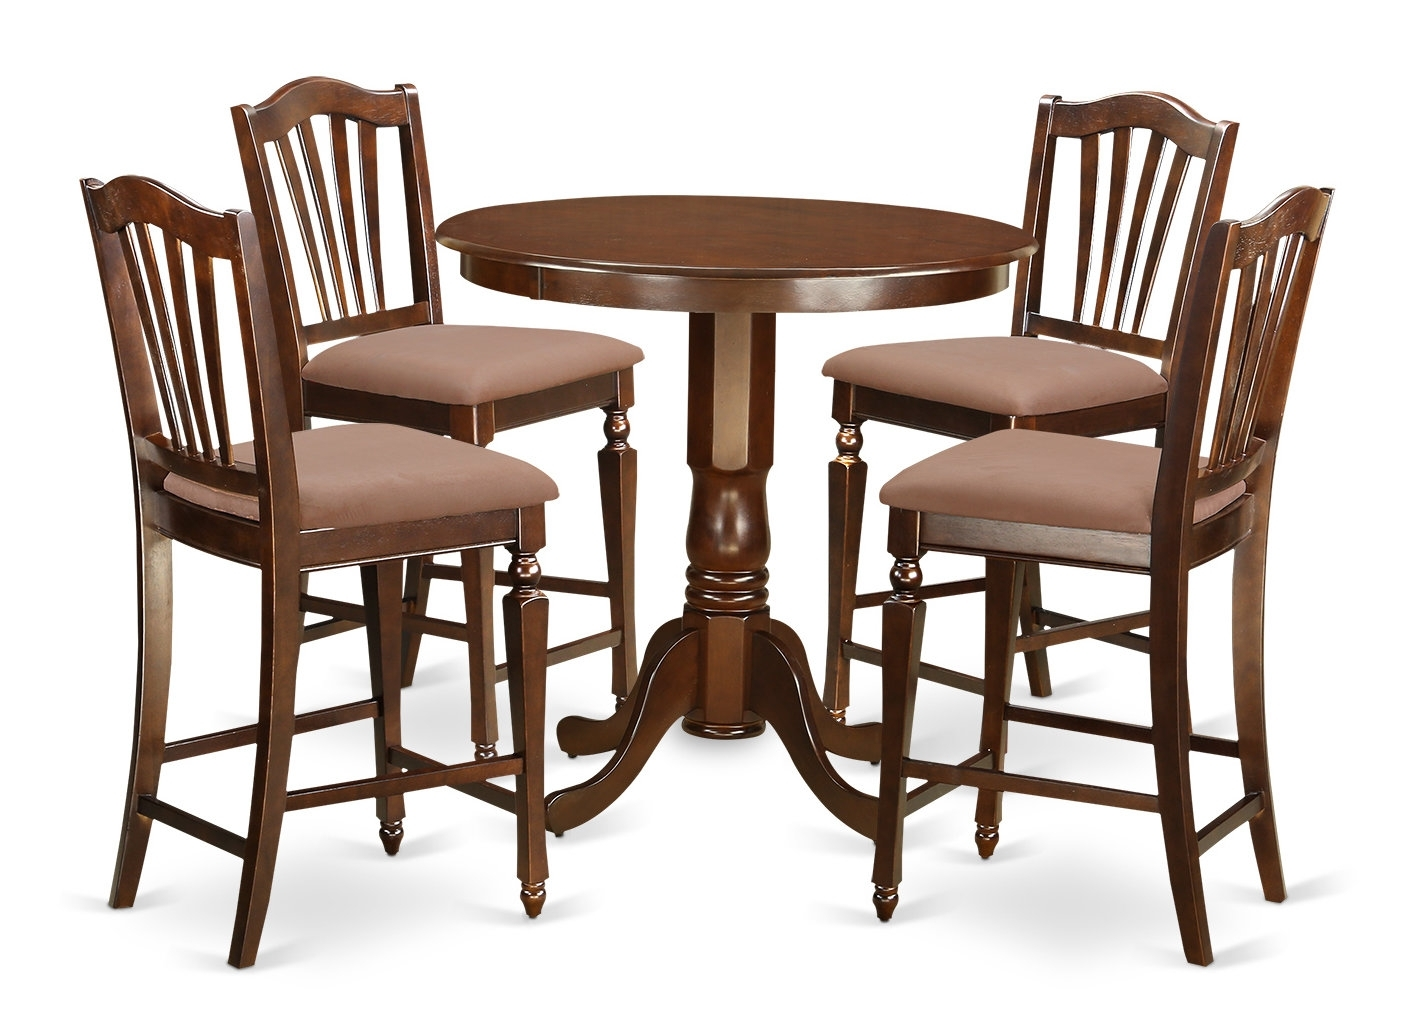 East West Jackson 5 Piece Counter Height Pub Table Set | Wayfair For Most Recent Jaxon Grey 5 Piece Round Extension Dining Sets With Wood Chairs (Image 7 of 20)